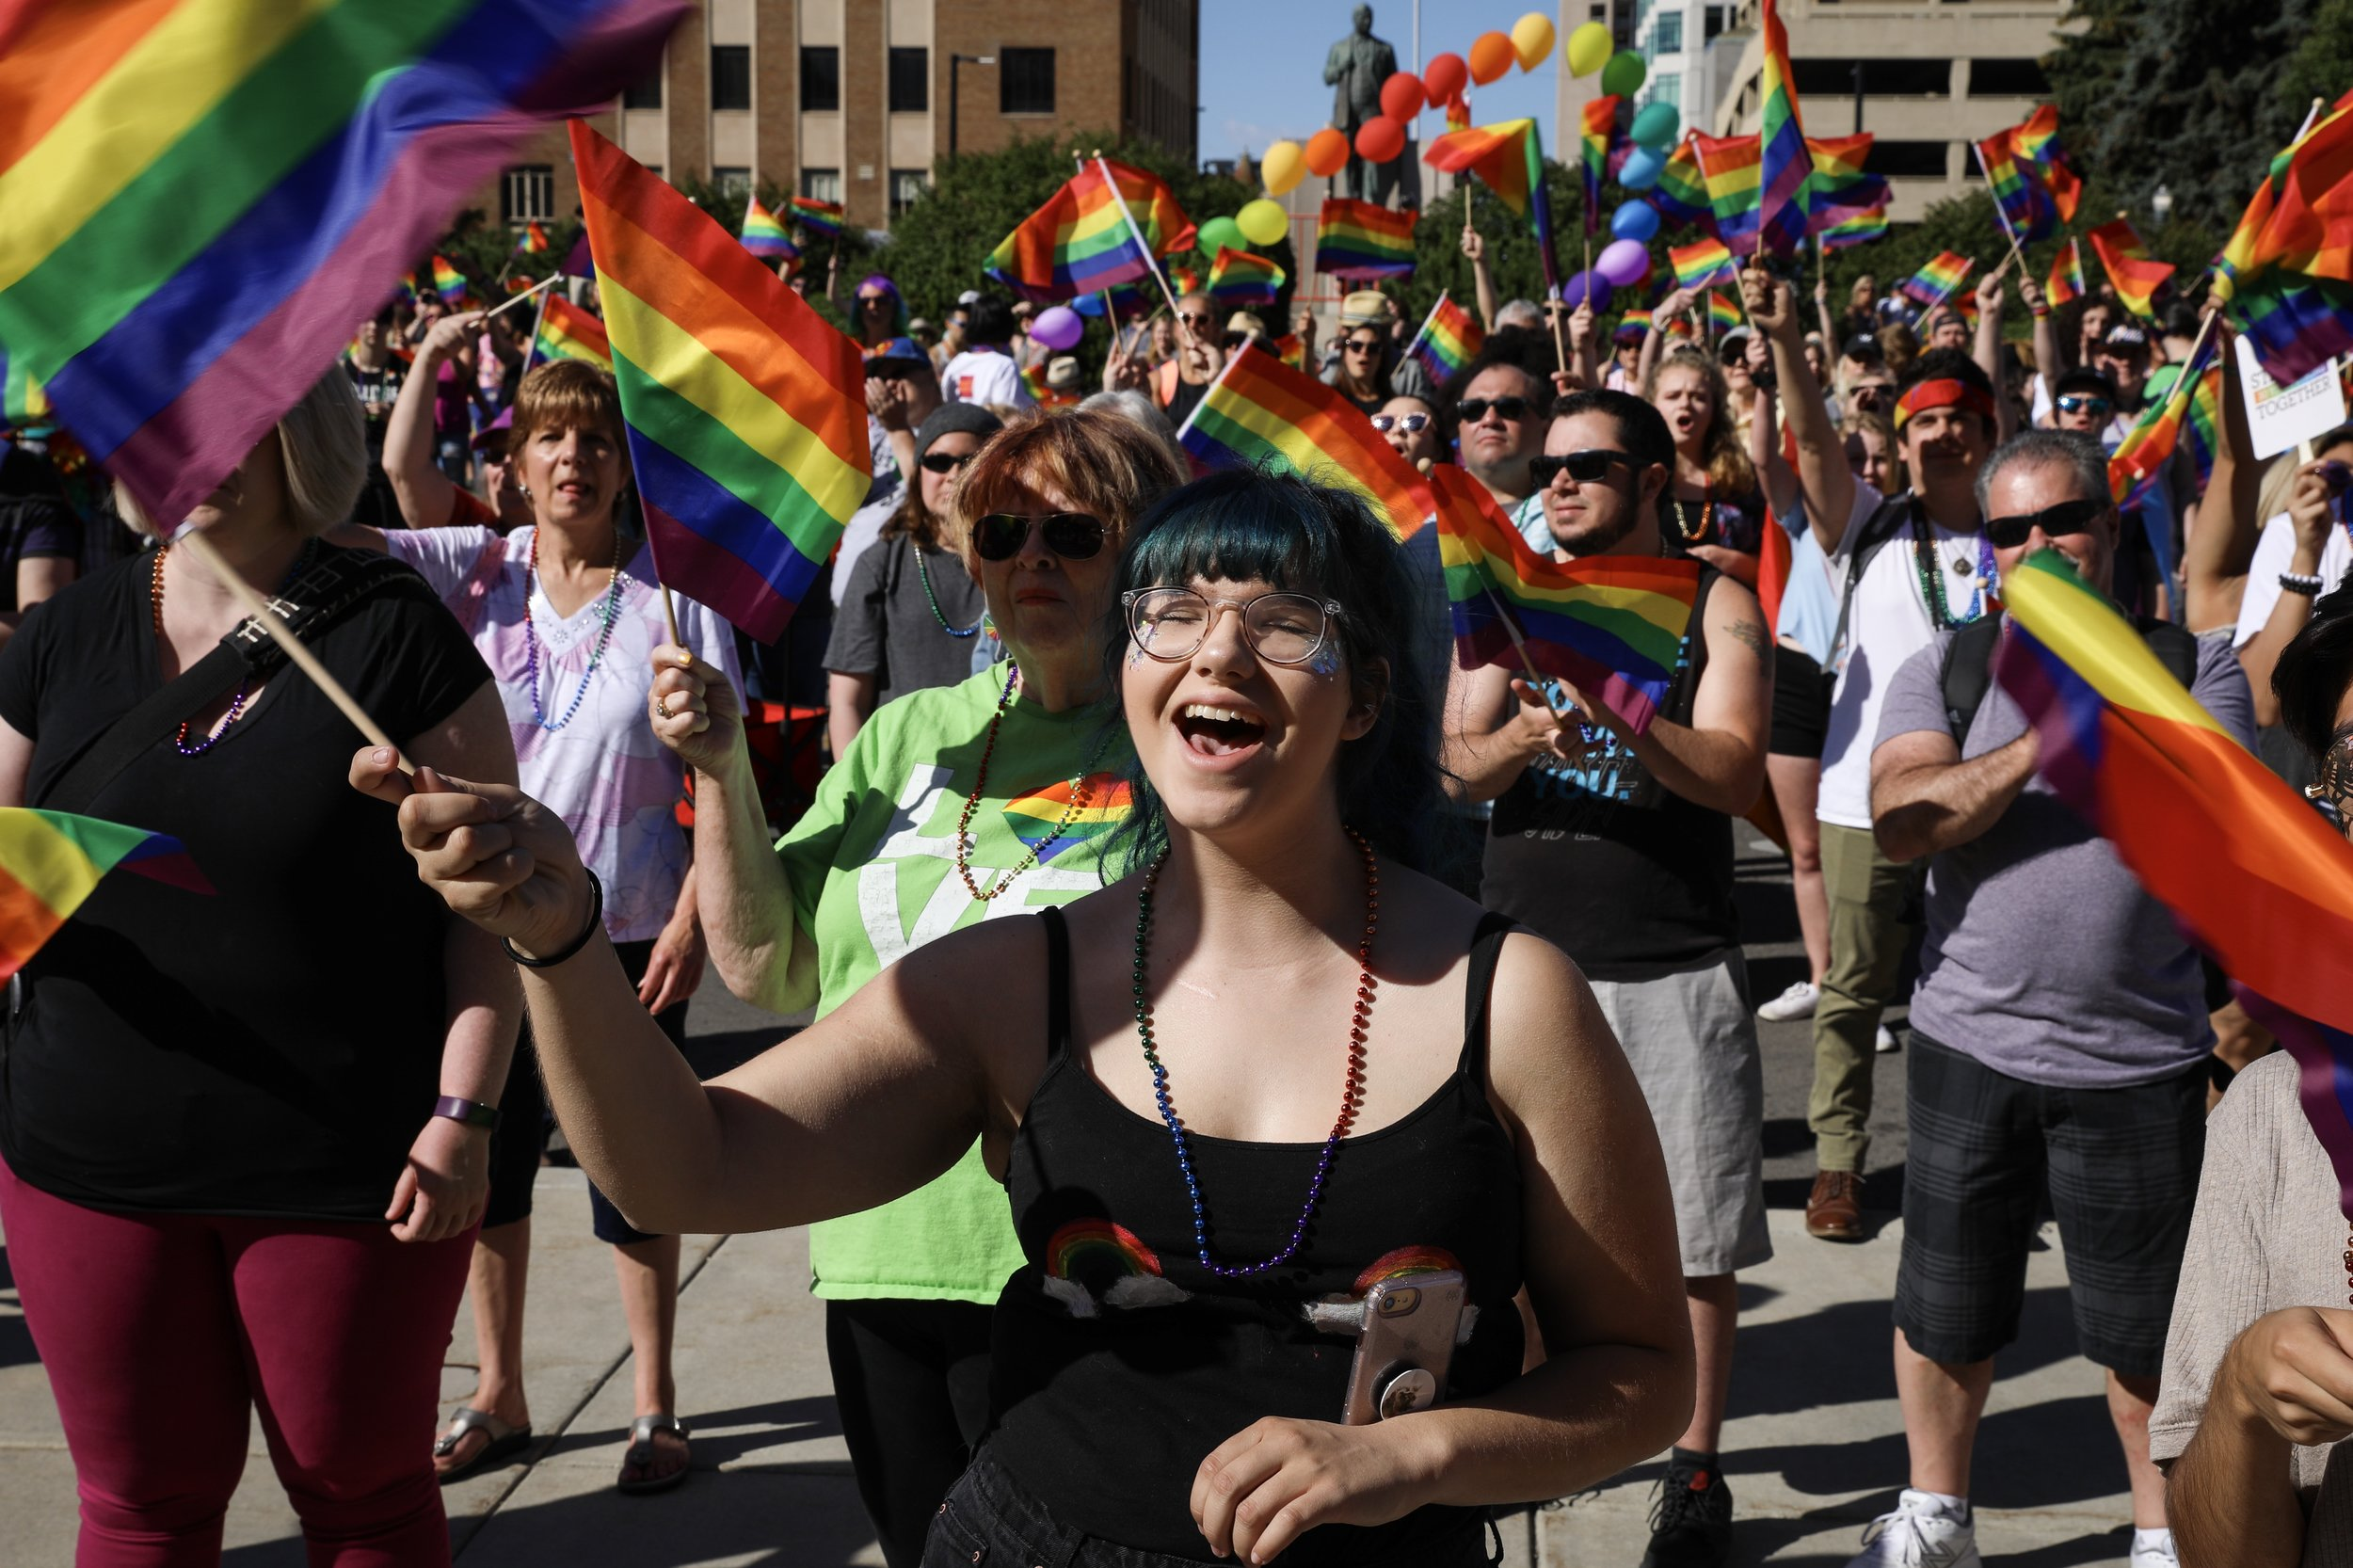 Emily Talbot, center, waves a rainbow flag to support a speaker during a rally at 2018 Boise Pride Festival in downtown Boise on Saturday, June 16, 2018. Talbot identifies herself as bisexual.